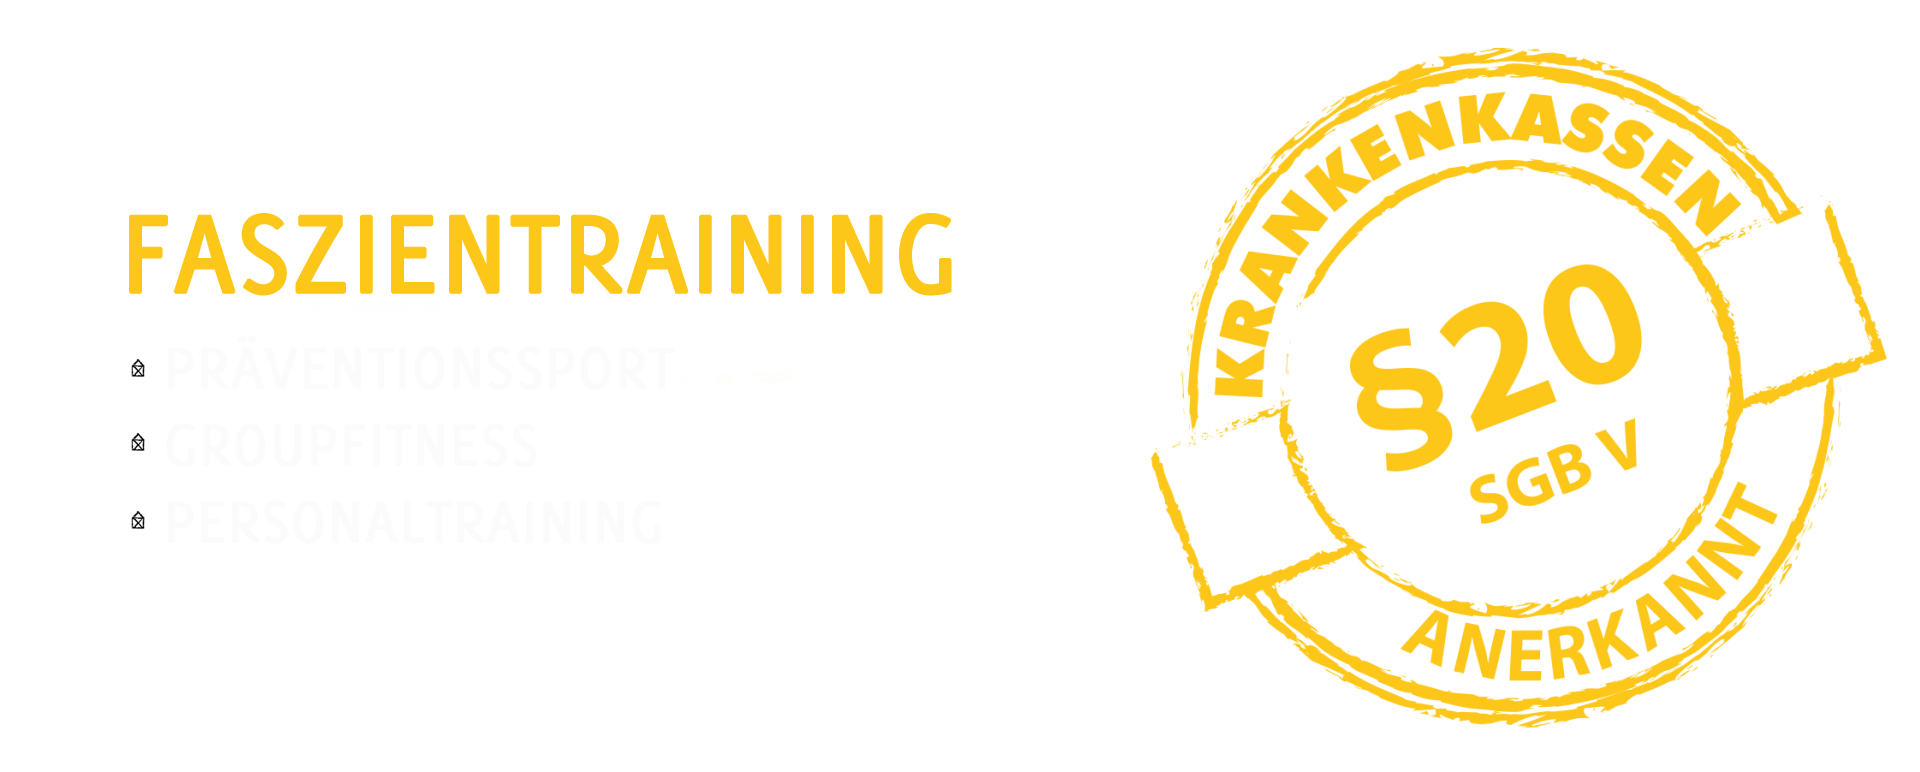 Faszientraining als Präventionssport, Groupfitness, Personaltraining